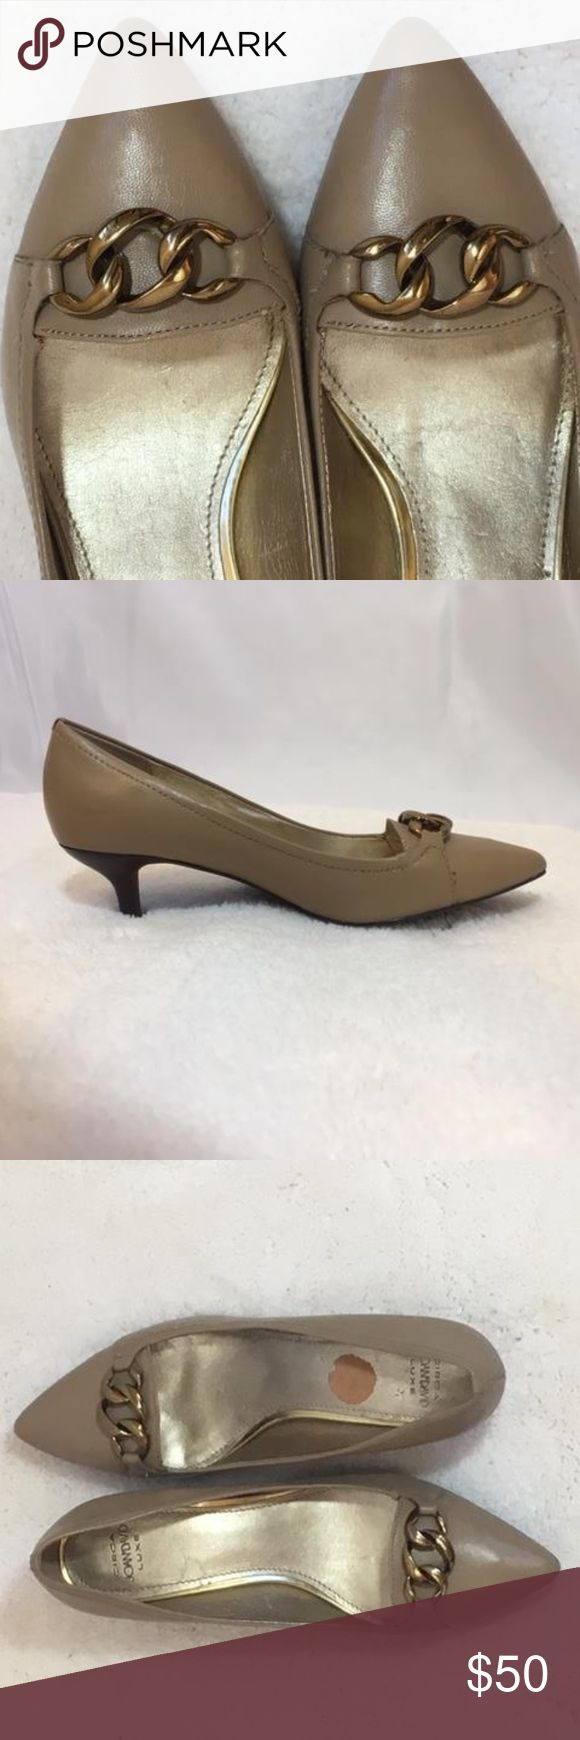 Circa Joan & David Pumps Beautiful and sturdy Joan & David Pumps. Soles and heels are in excellent condition. Outside of shoes are also in excellent condition. Leather upper and synthetic lining.  Size: 7M Joan & David Shoes Heels